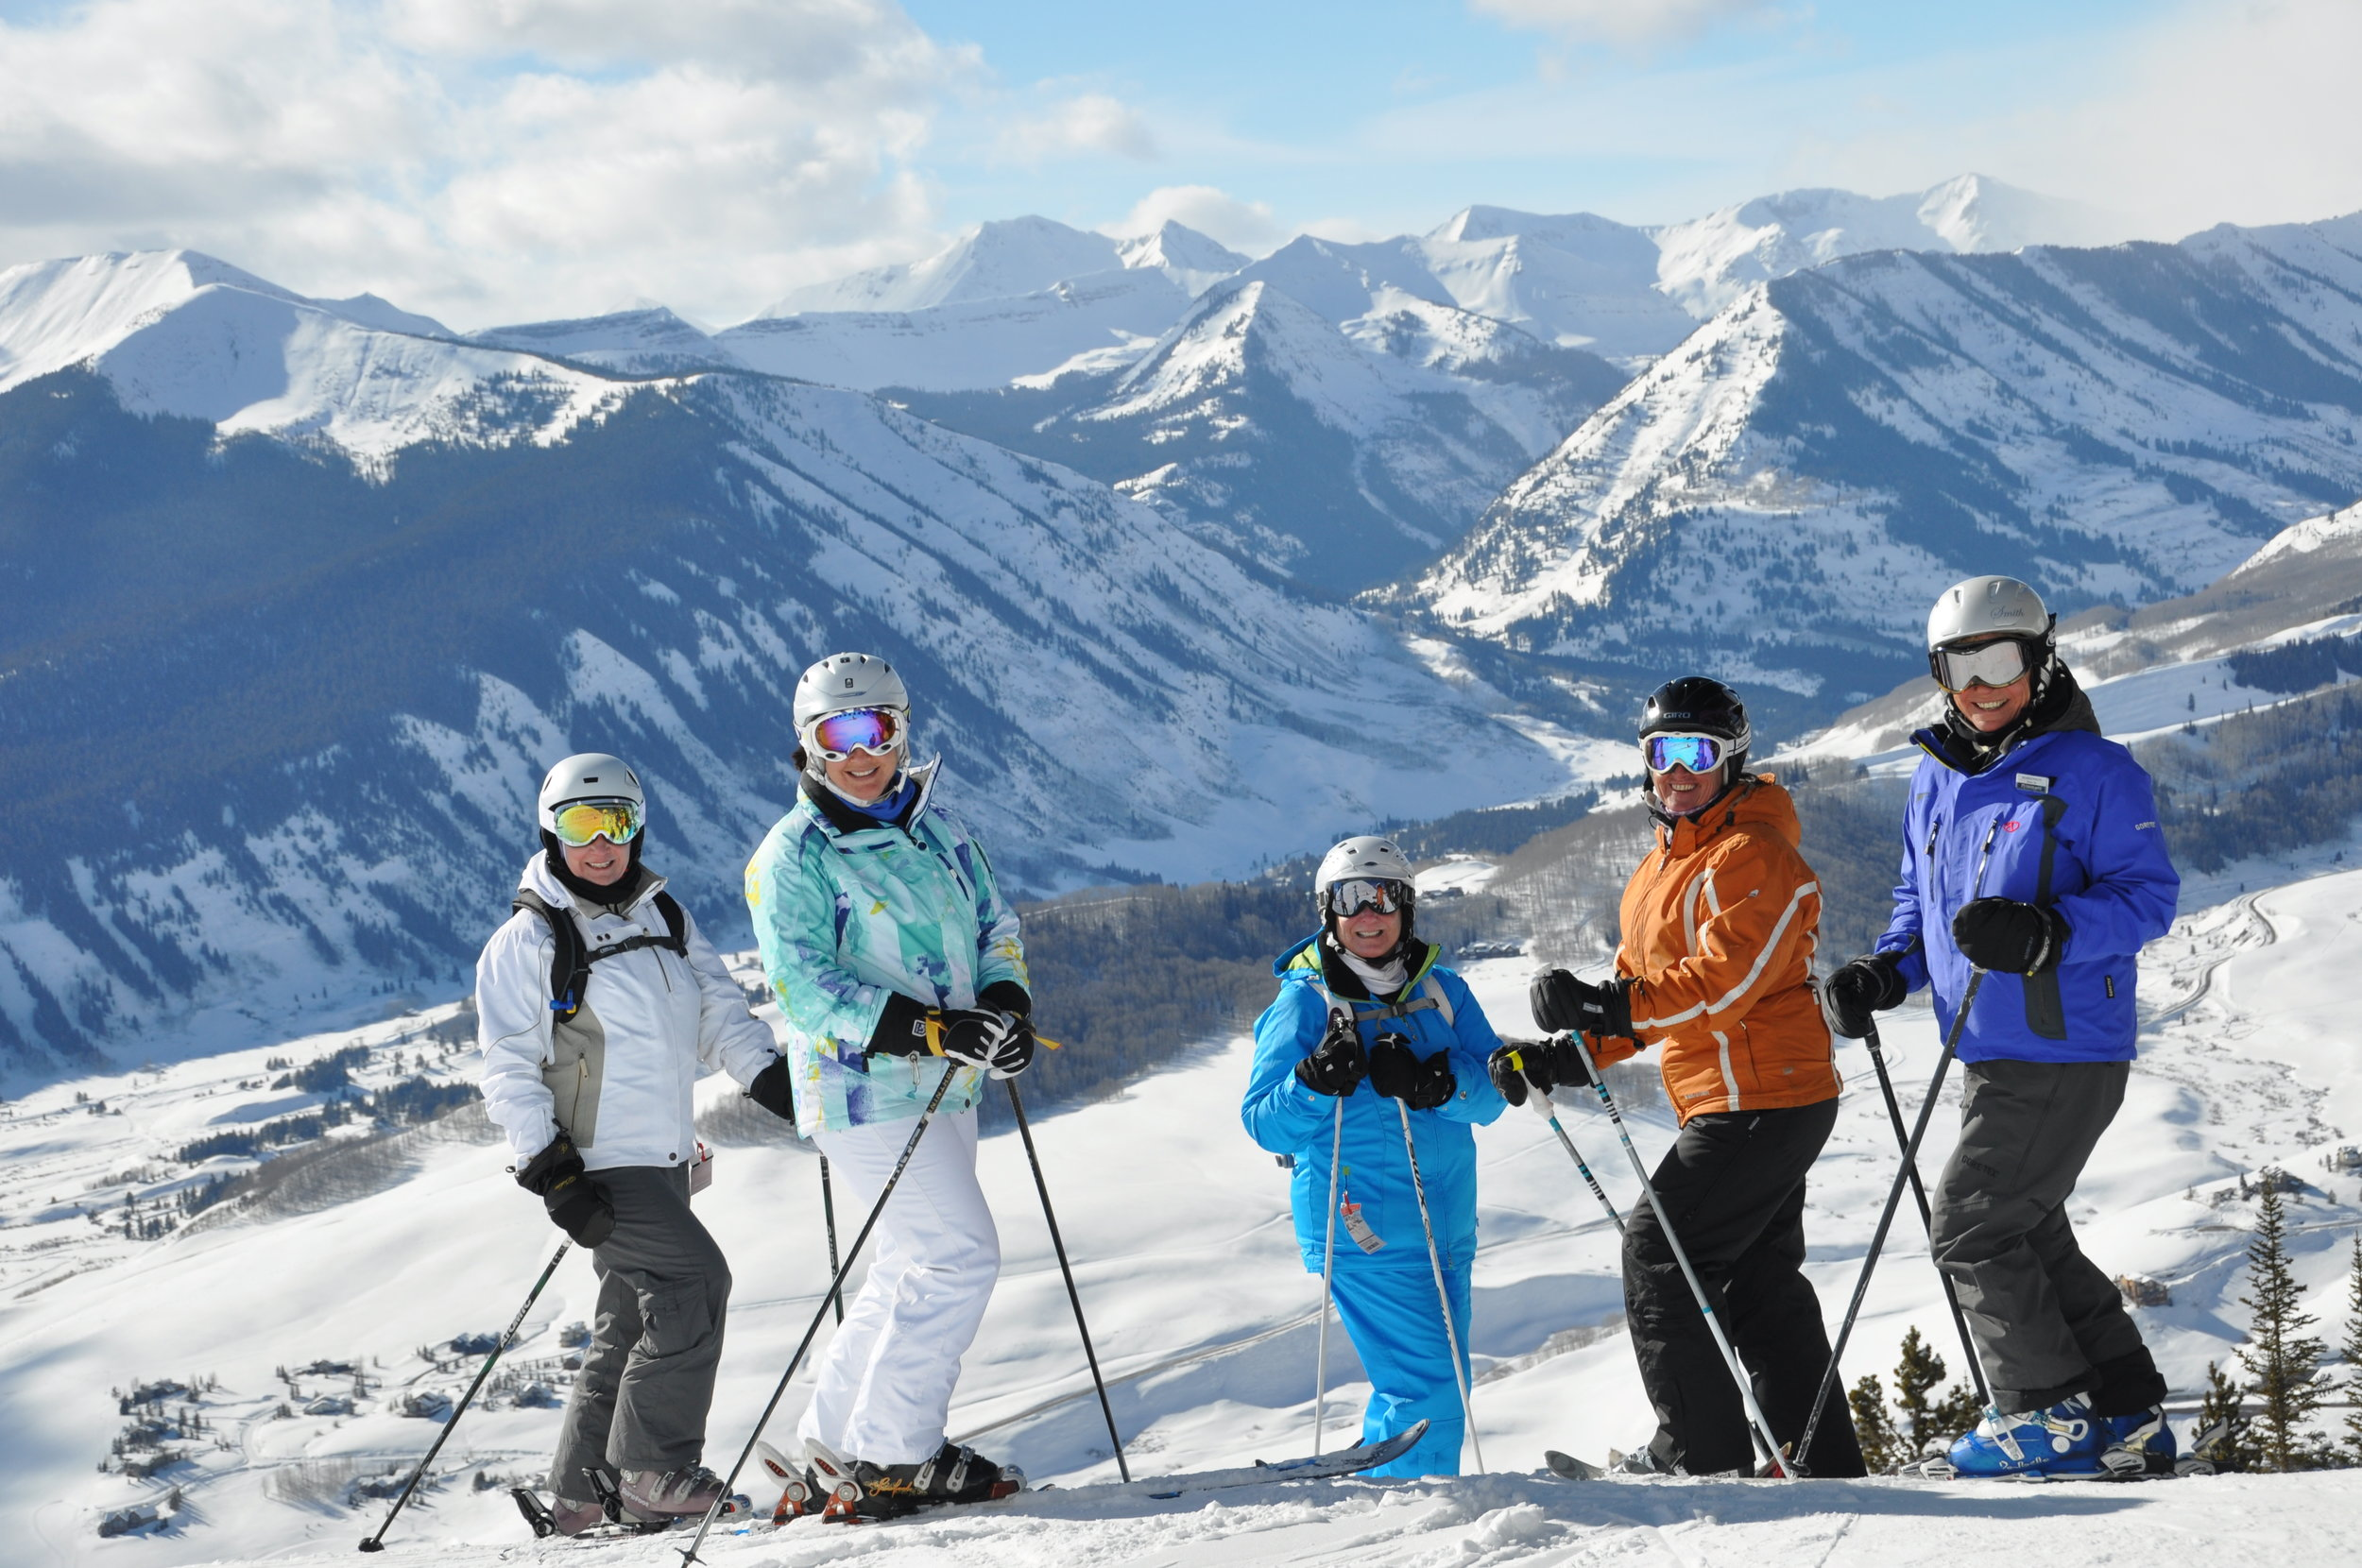 Janet and friends in Crested Butte, CO